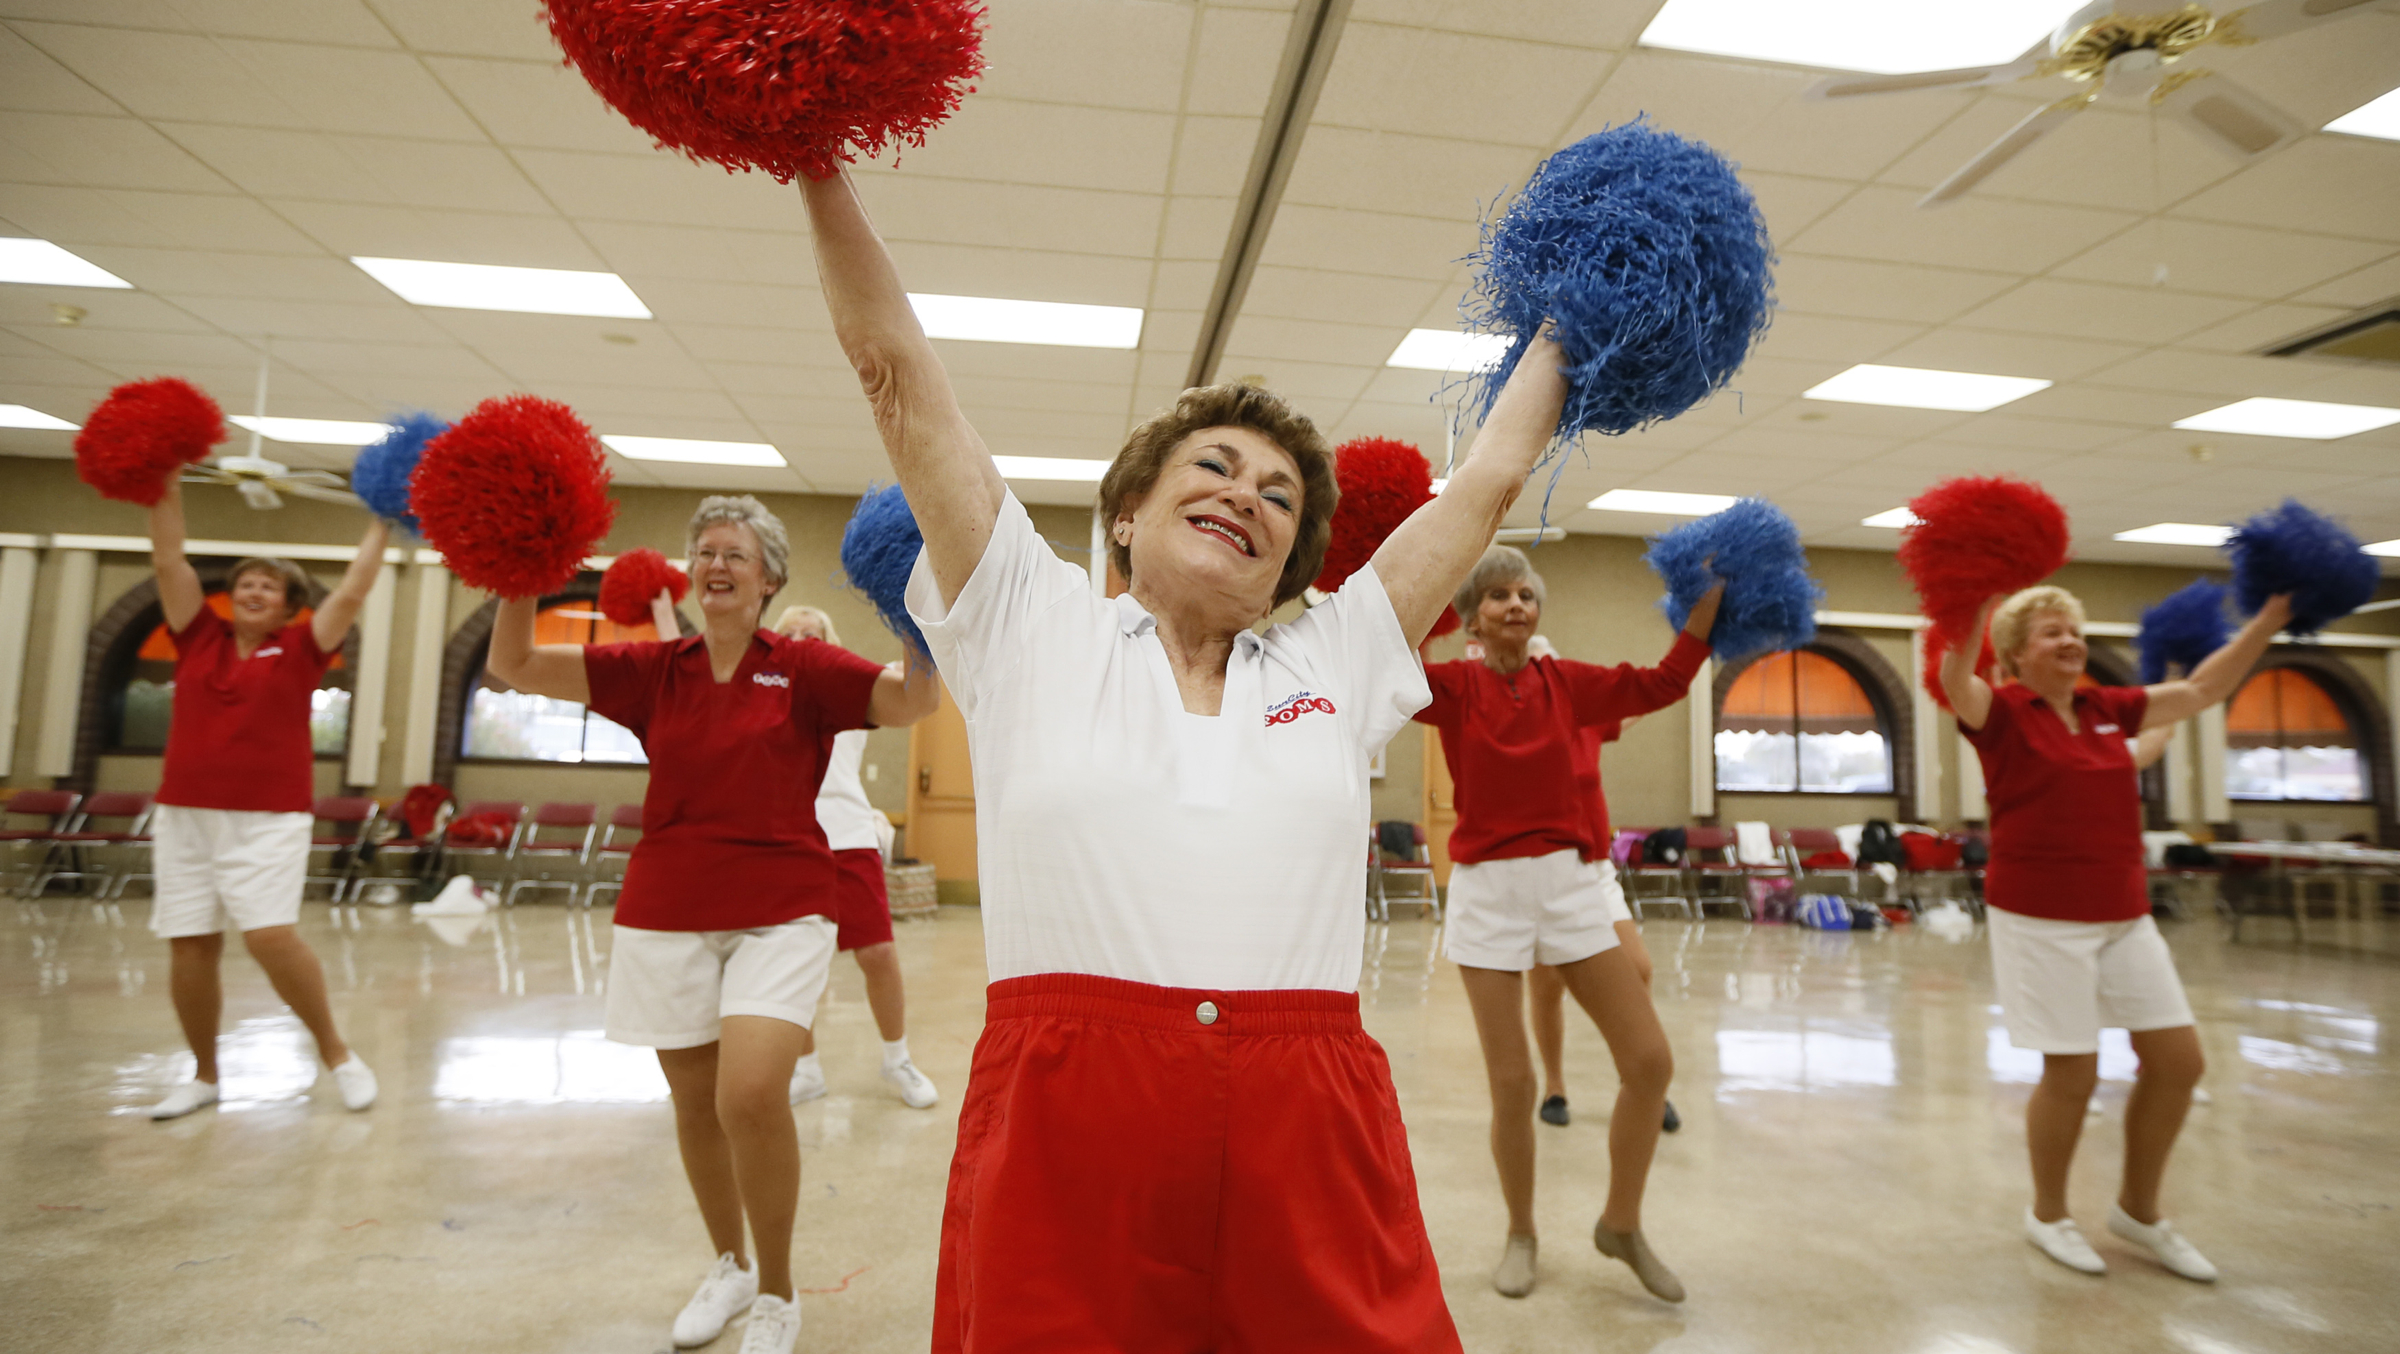 Pat Weber, 81, leads the Sun City Poms cheerleader dancers as they rehearse in Sun City, Arizona, January 7, 2013. Sun City was built in 1959 by entrepreneur Del Webb as America?s first active retirement community for the over-55's. Del Webb predicted that retirees would flock to a community where they were given more than just a house with a rocking chair in which to sit and wait to die. Today?s residents keep their minds and bodies active by socializing at over 120 clubs with activities such as square dancing, ceramics, roller skating, computers, cheerleading, racquetball and yoga. There are 38,500 residents in the community with an average age 72.4 years. Picture taken January 7, 2013.  REUTERS/Lucy Nicholson (UNITED STATES - Tags: SOCIETY TPX IMAGES OF THE DAY)  ATTENTION EDITORS - PICTURE 20 OF 30 FOR PACKAGE 'THE SPORTY SENIORS OF SUN CITY' SEARCH 'SUN CITY' FOR ALL IMAGES - RTR3CITP